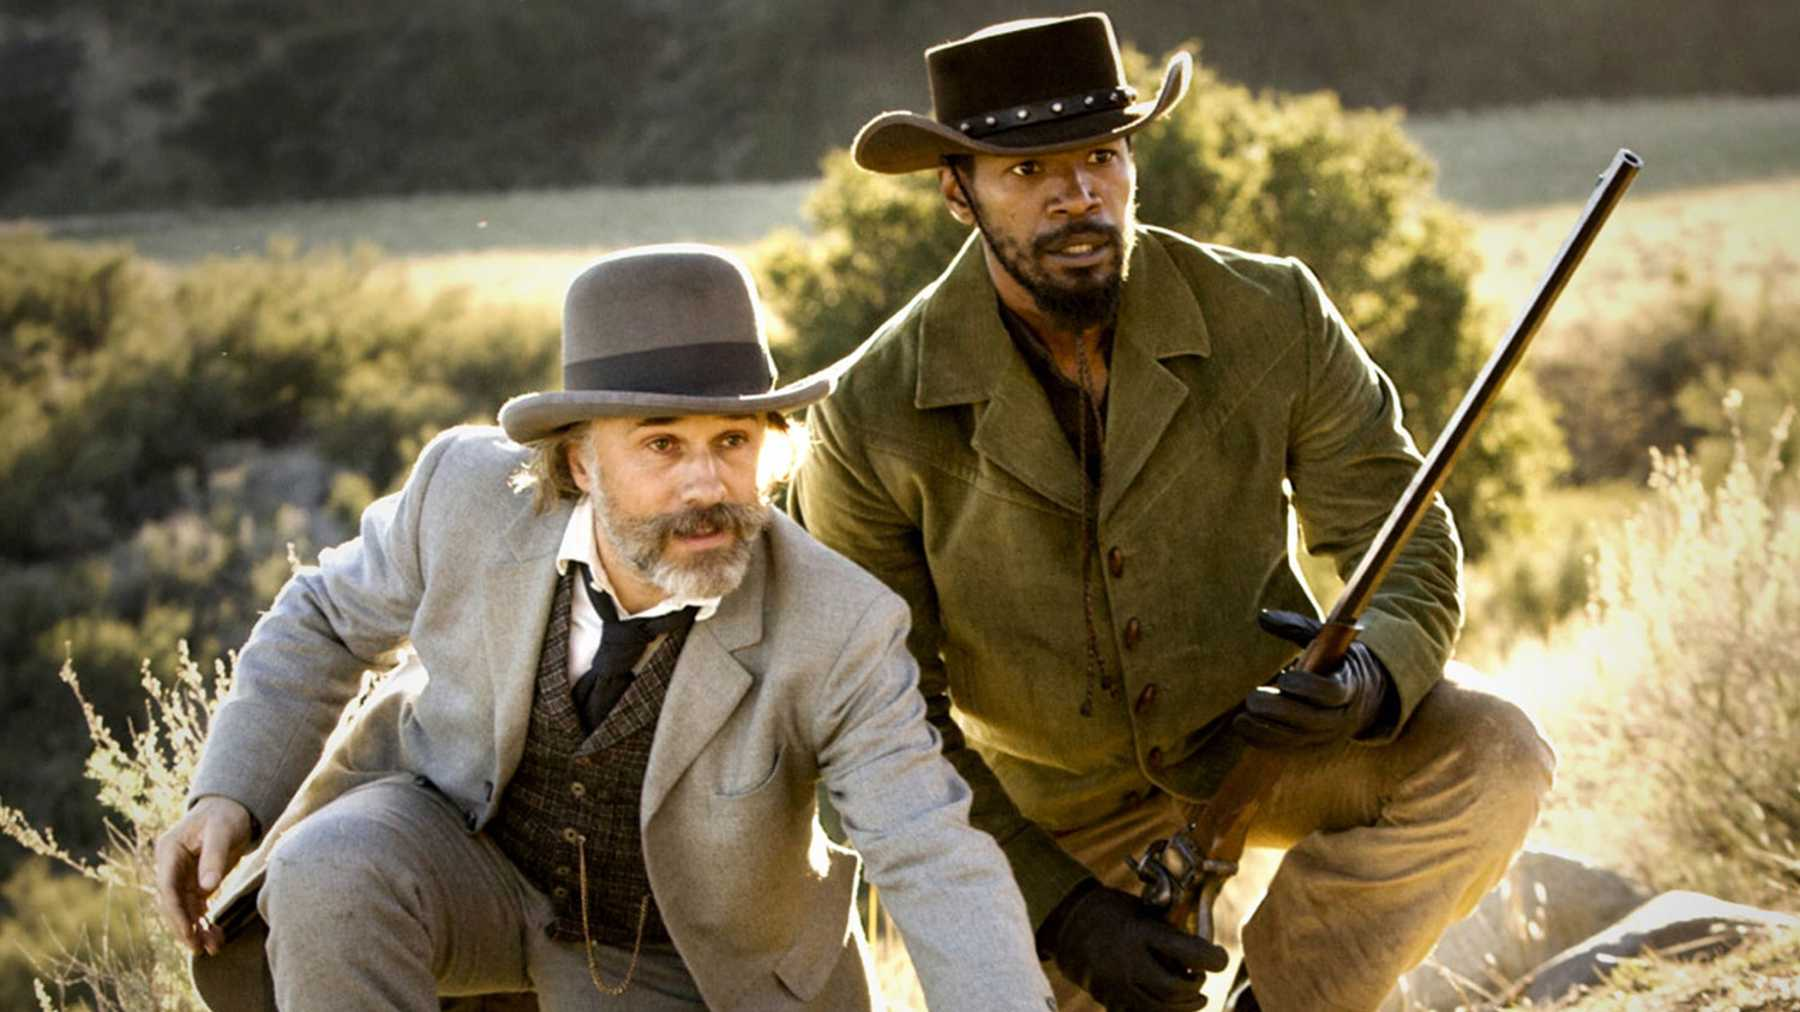 django unchained | 21 movies free to stream right now: Parasite, The Big Short, Train to Busan, more | The Paradise